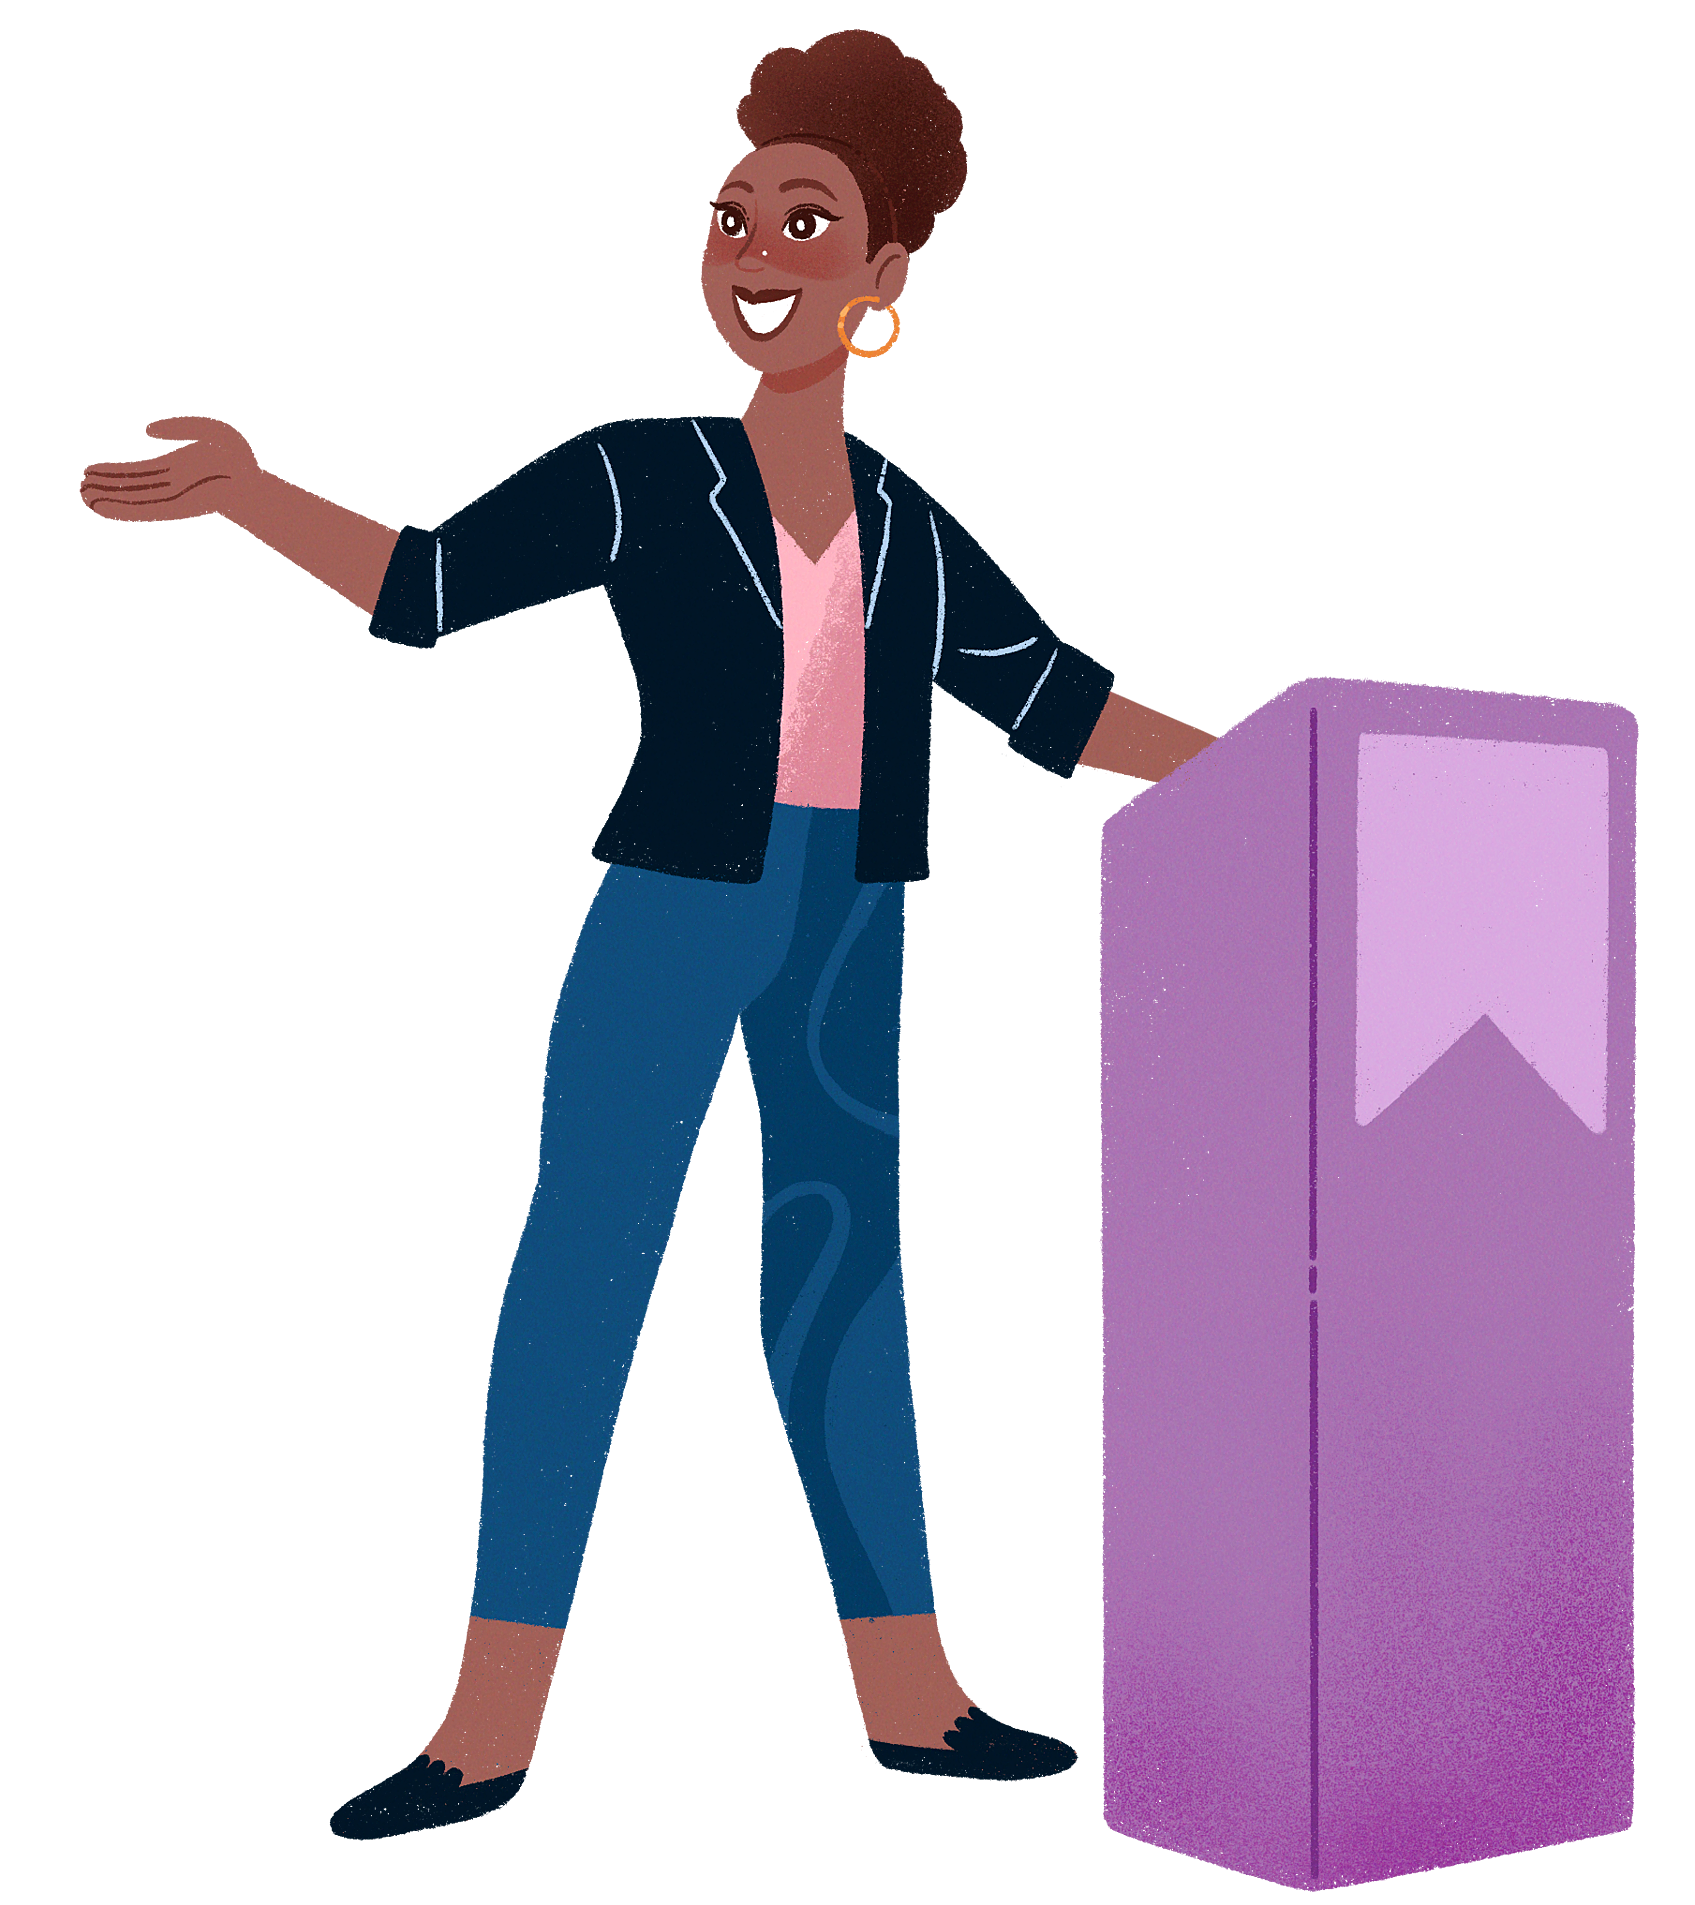 Illustration of me speaking at a podium